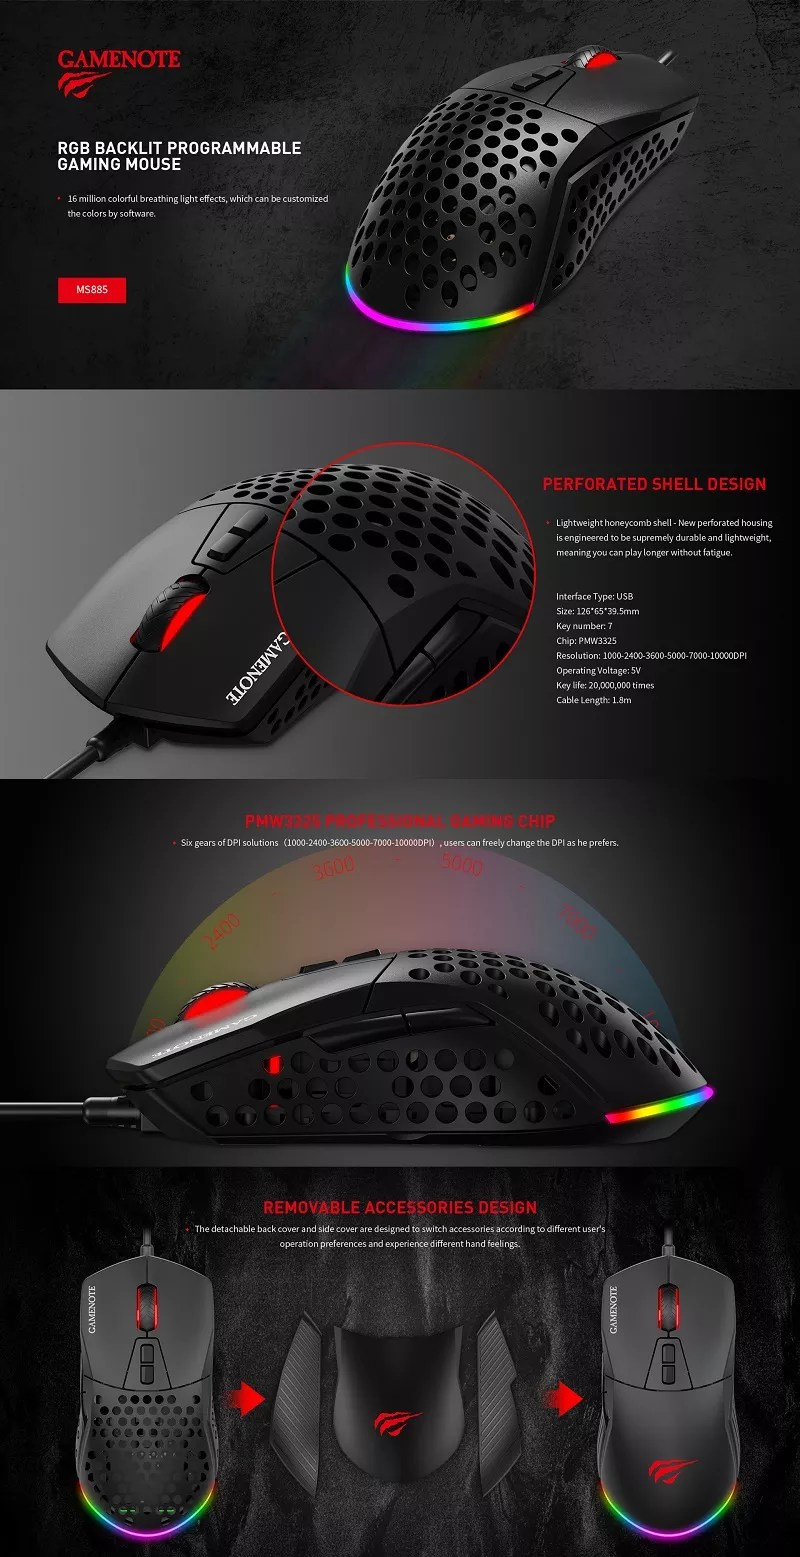 Havit Mouse Software : havit, mouse, software, Havit, Honeycomb, Light, Weight, Gaming, Mouse, Pmw3325, Programmable, Software, Holes, Gamer, Ms885, Mouse,Professional, Software,Havit, Wired, Product